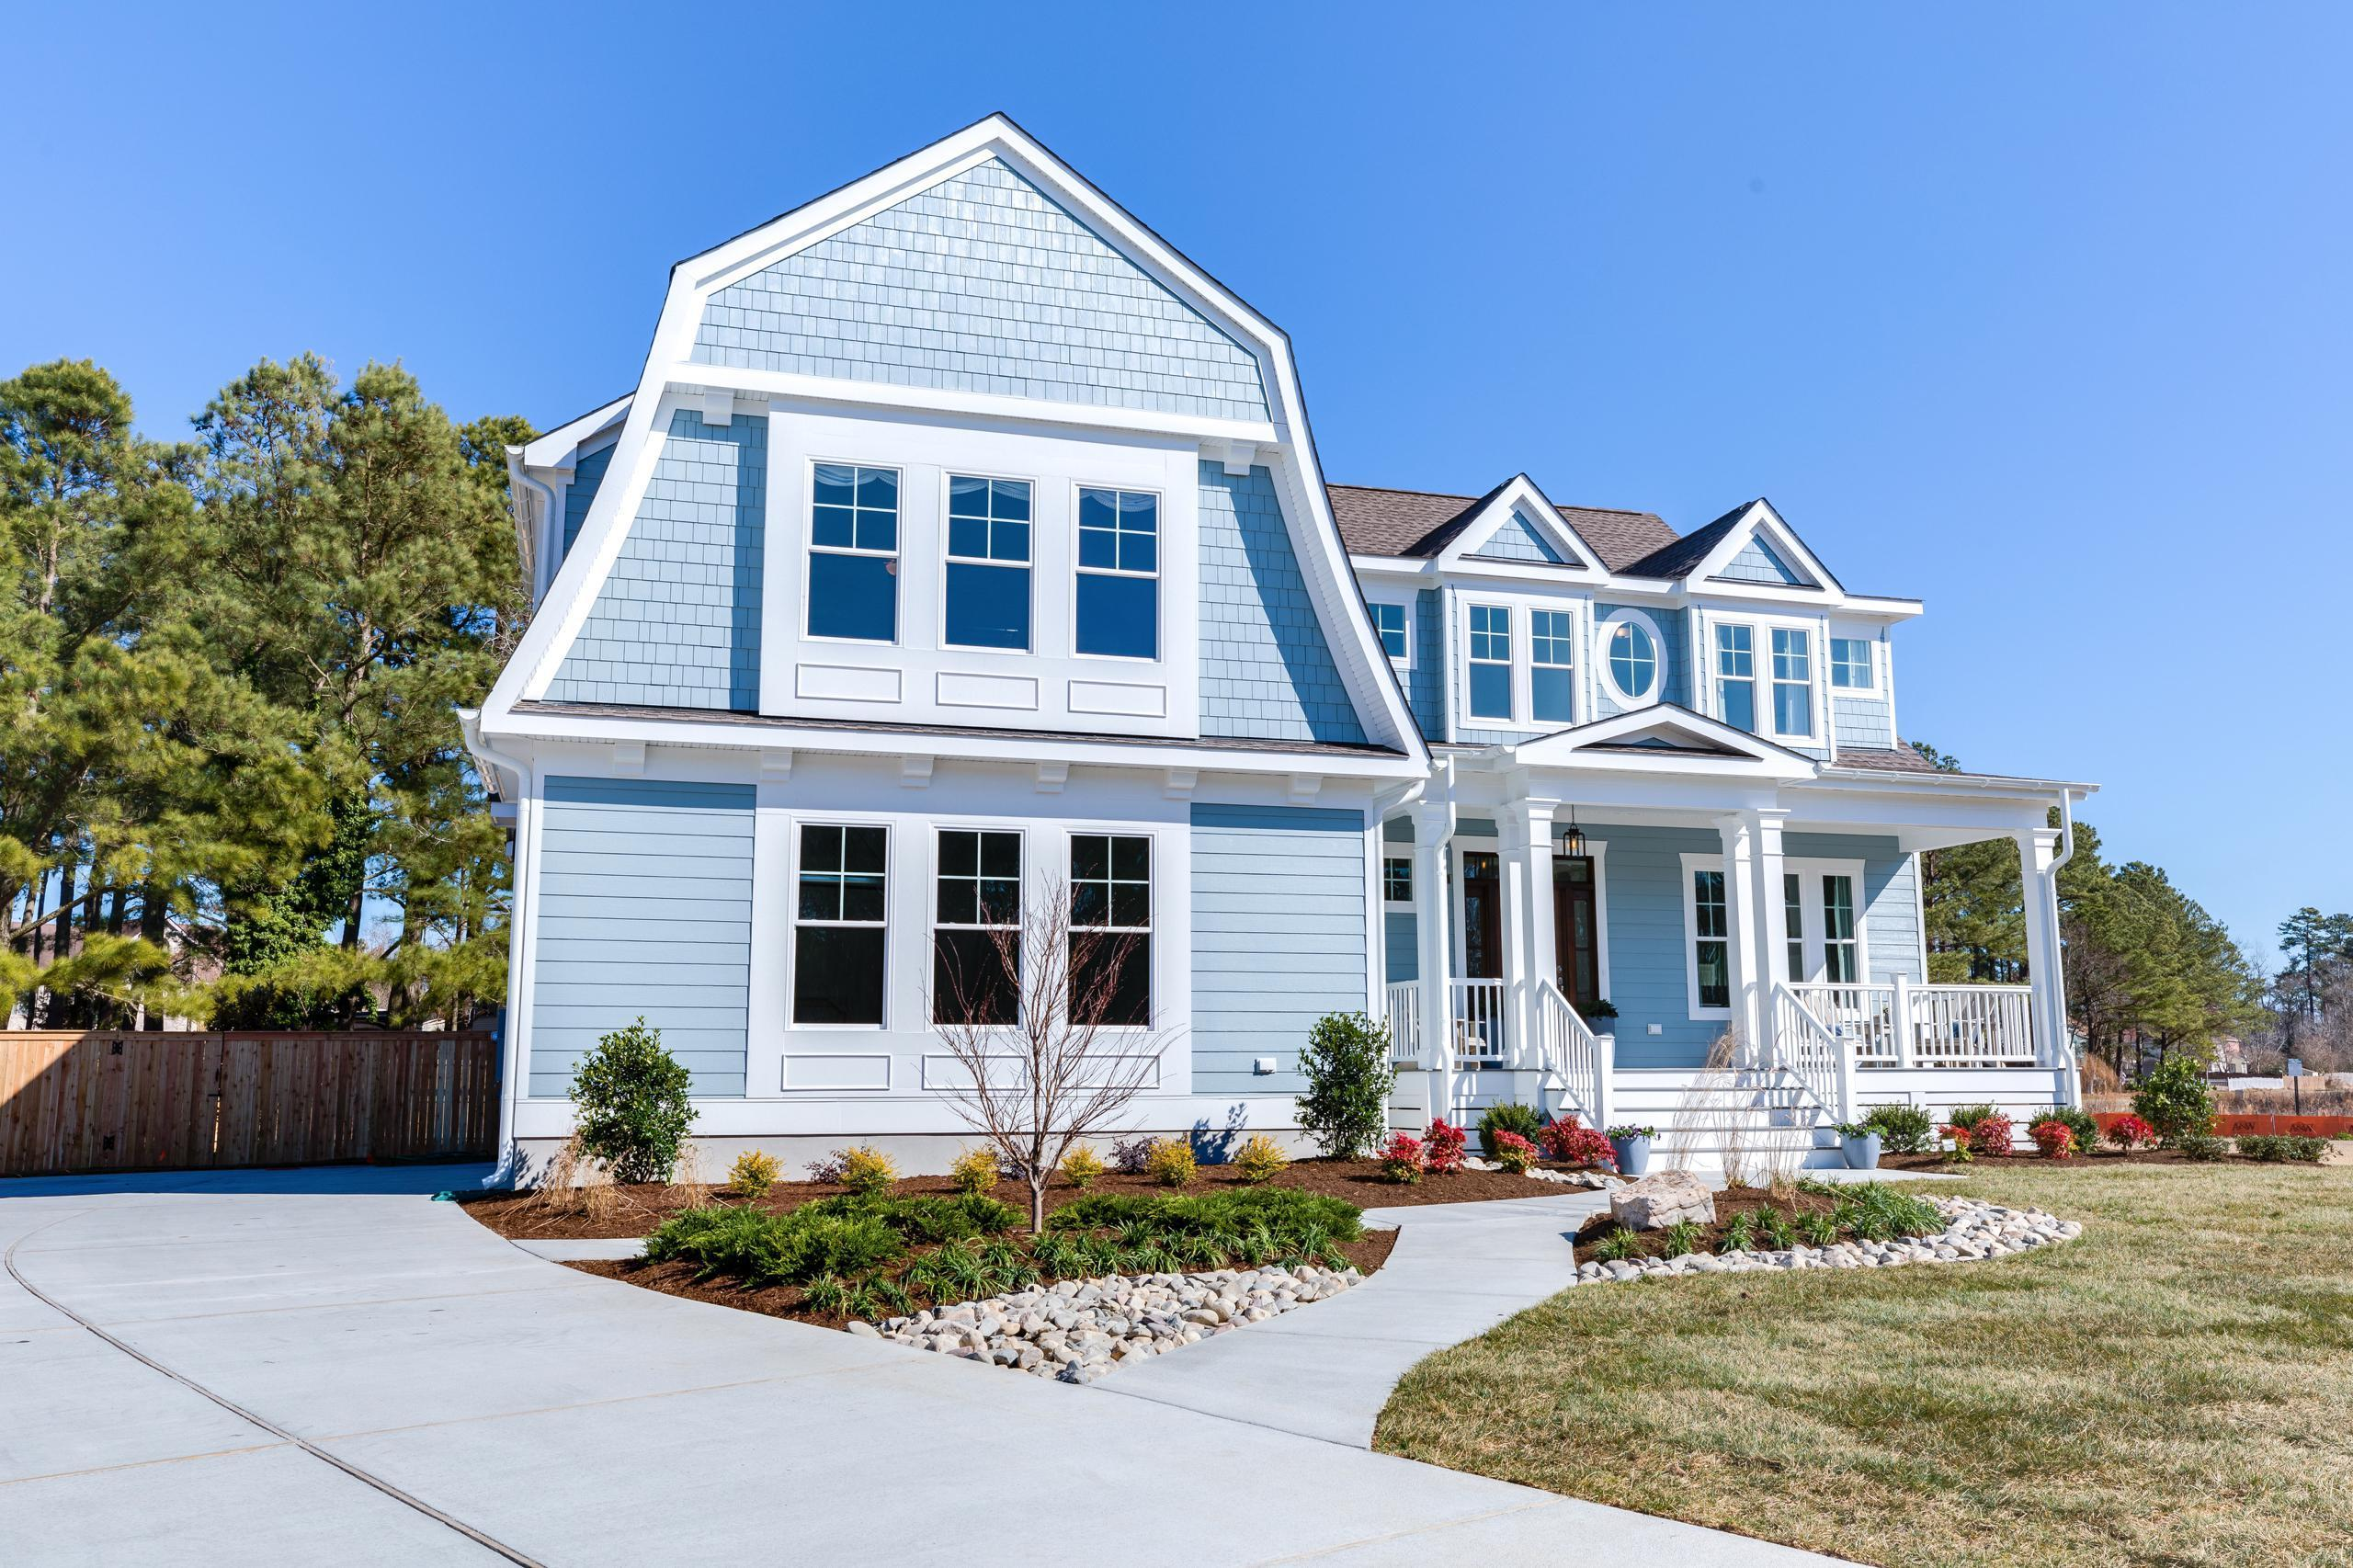 'Build Where You Want To Live' by Stephen Alexander Homes in Norfolk-Newport News